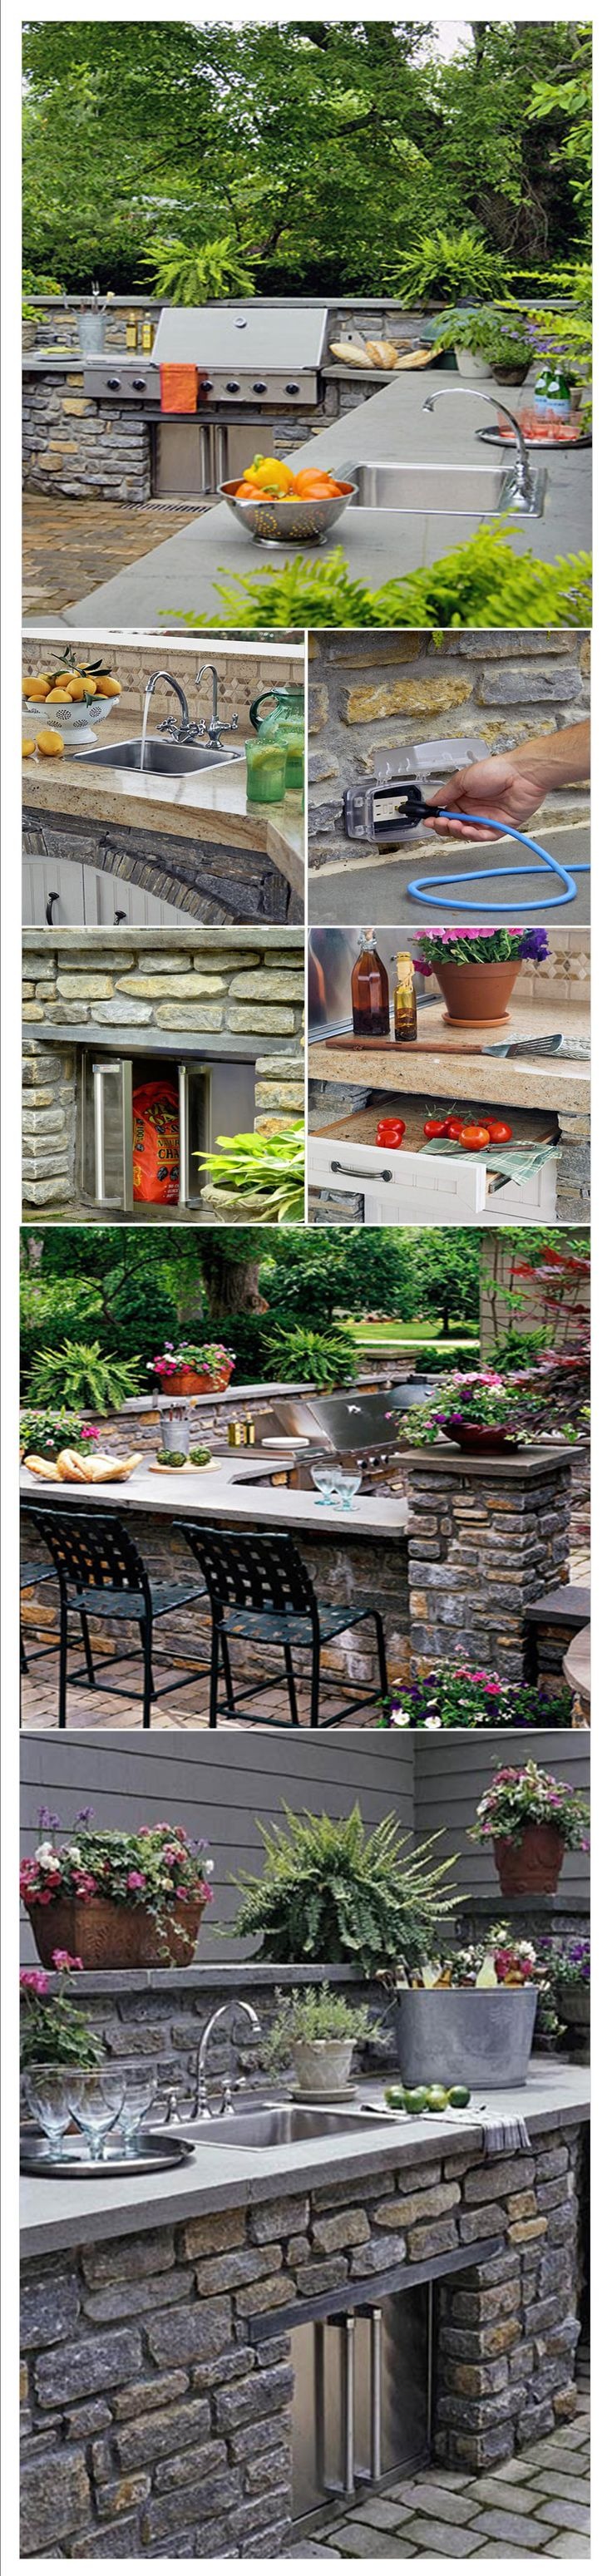 148 Best Images About Outdoor Kitchen Smoke Grill On Pinterest Offset Smoke